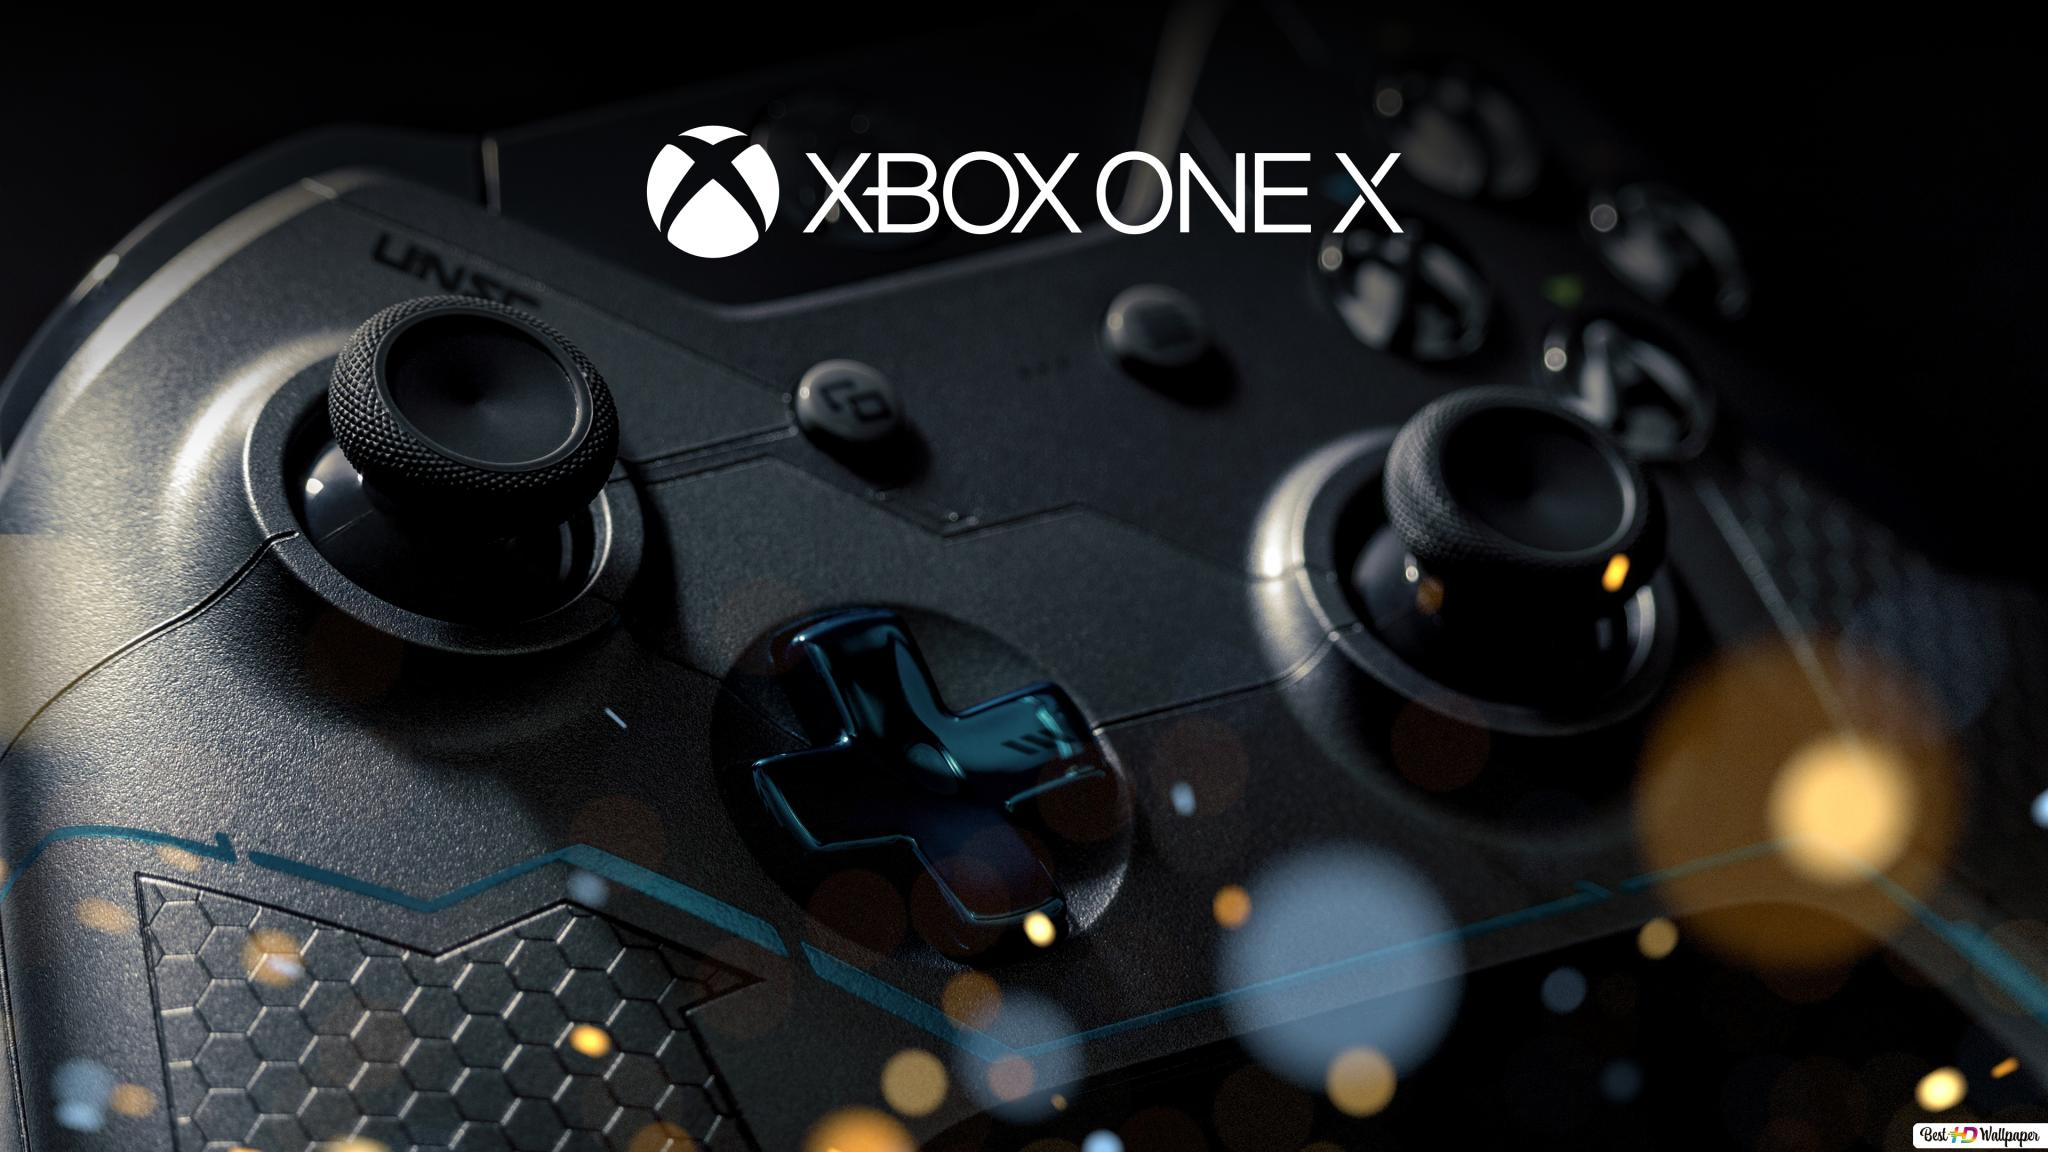 Xbox One X Gaming Console Hd Wallpaper Download